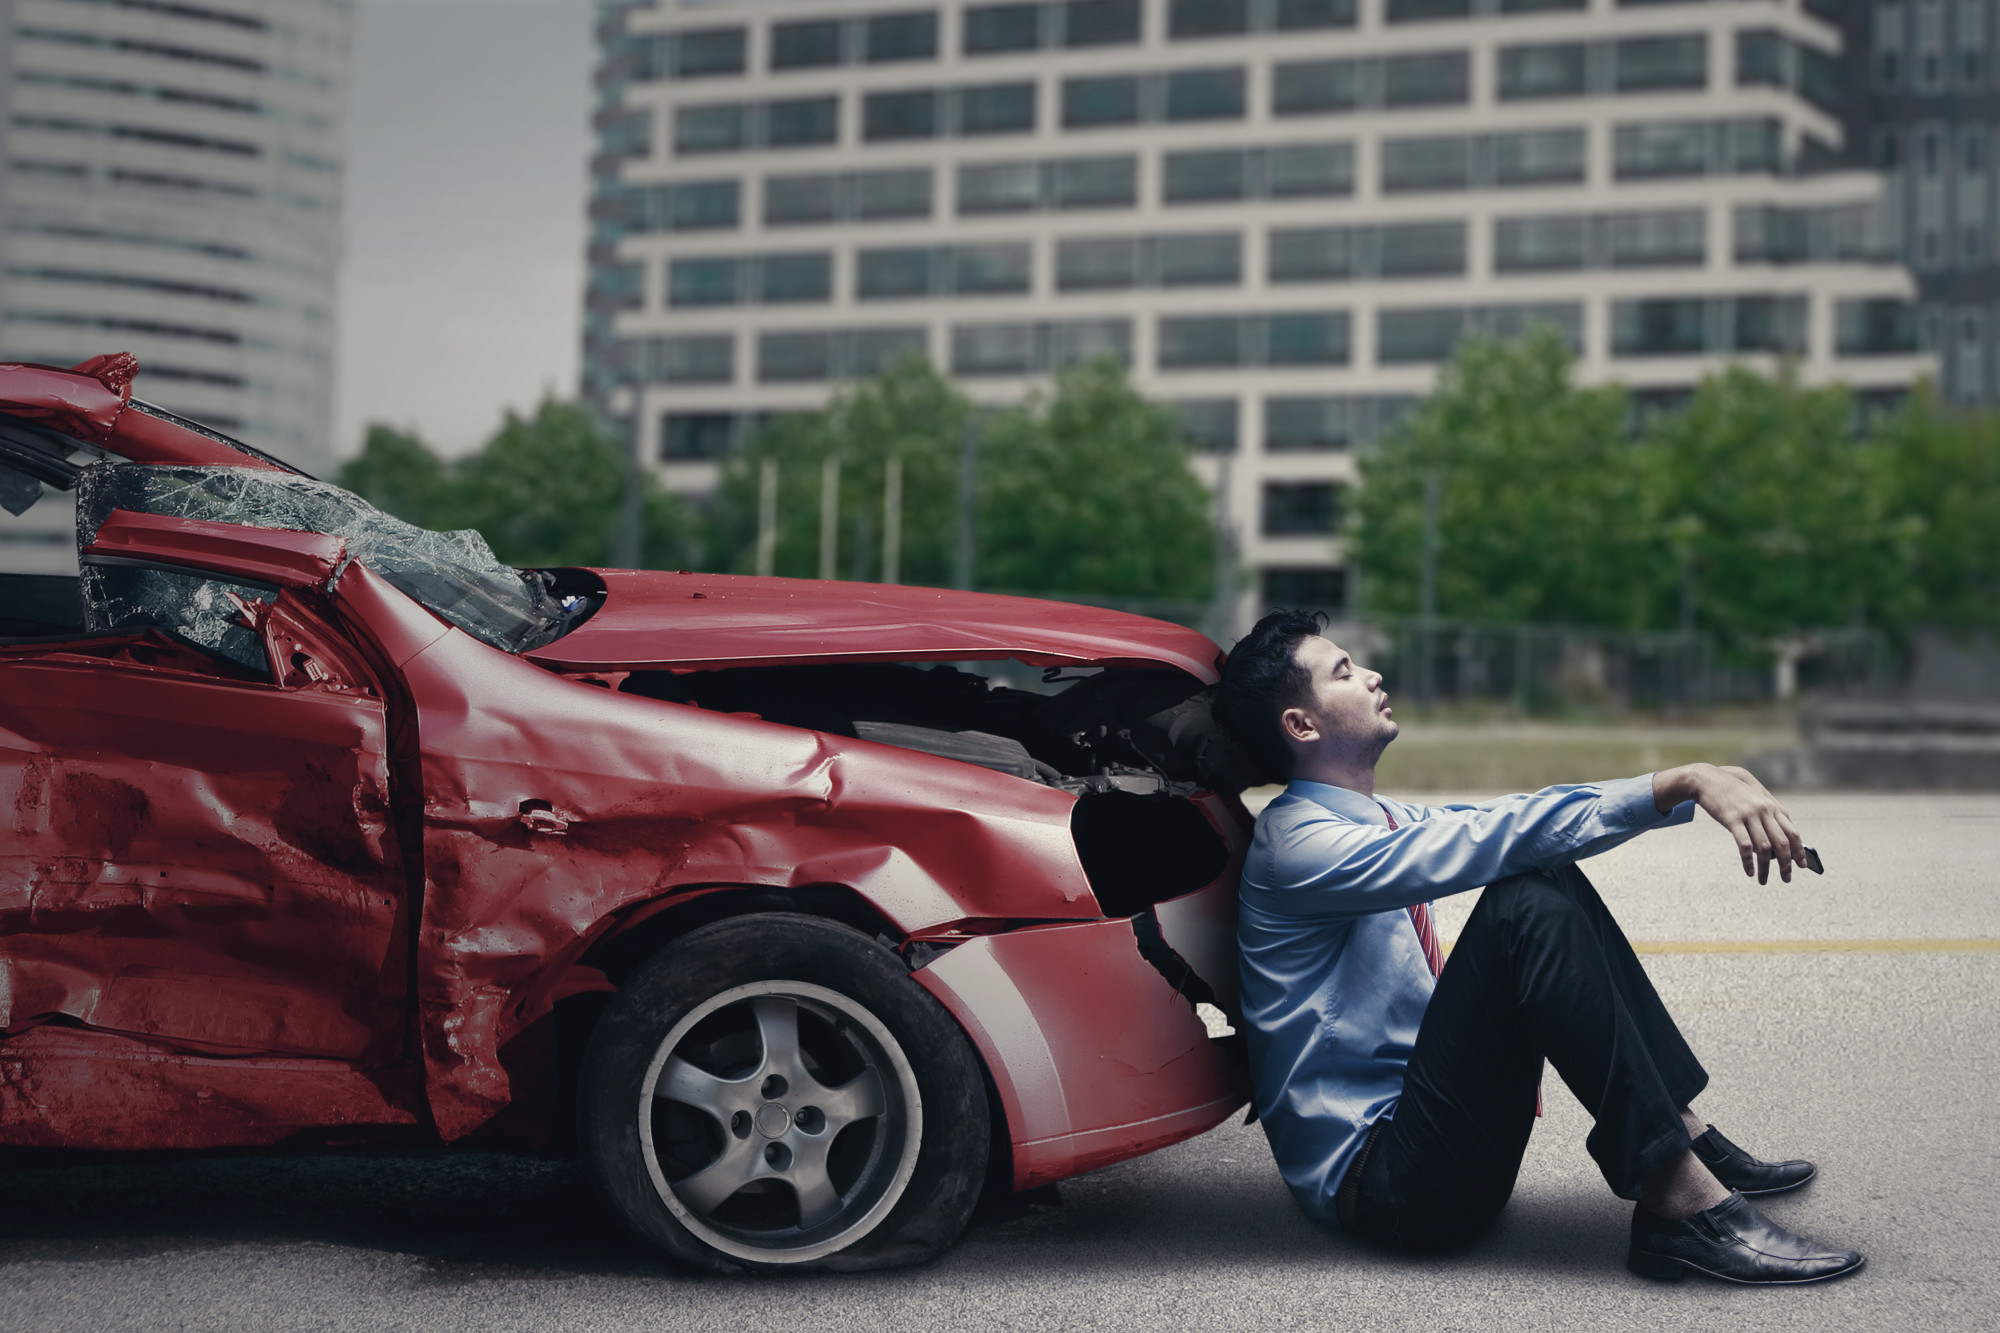 Will a DWI First Offense Ruin Your Life?